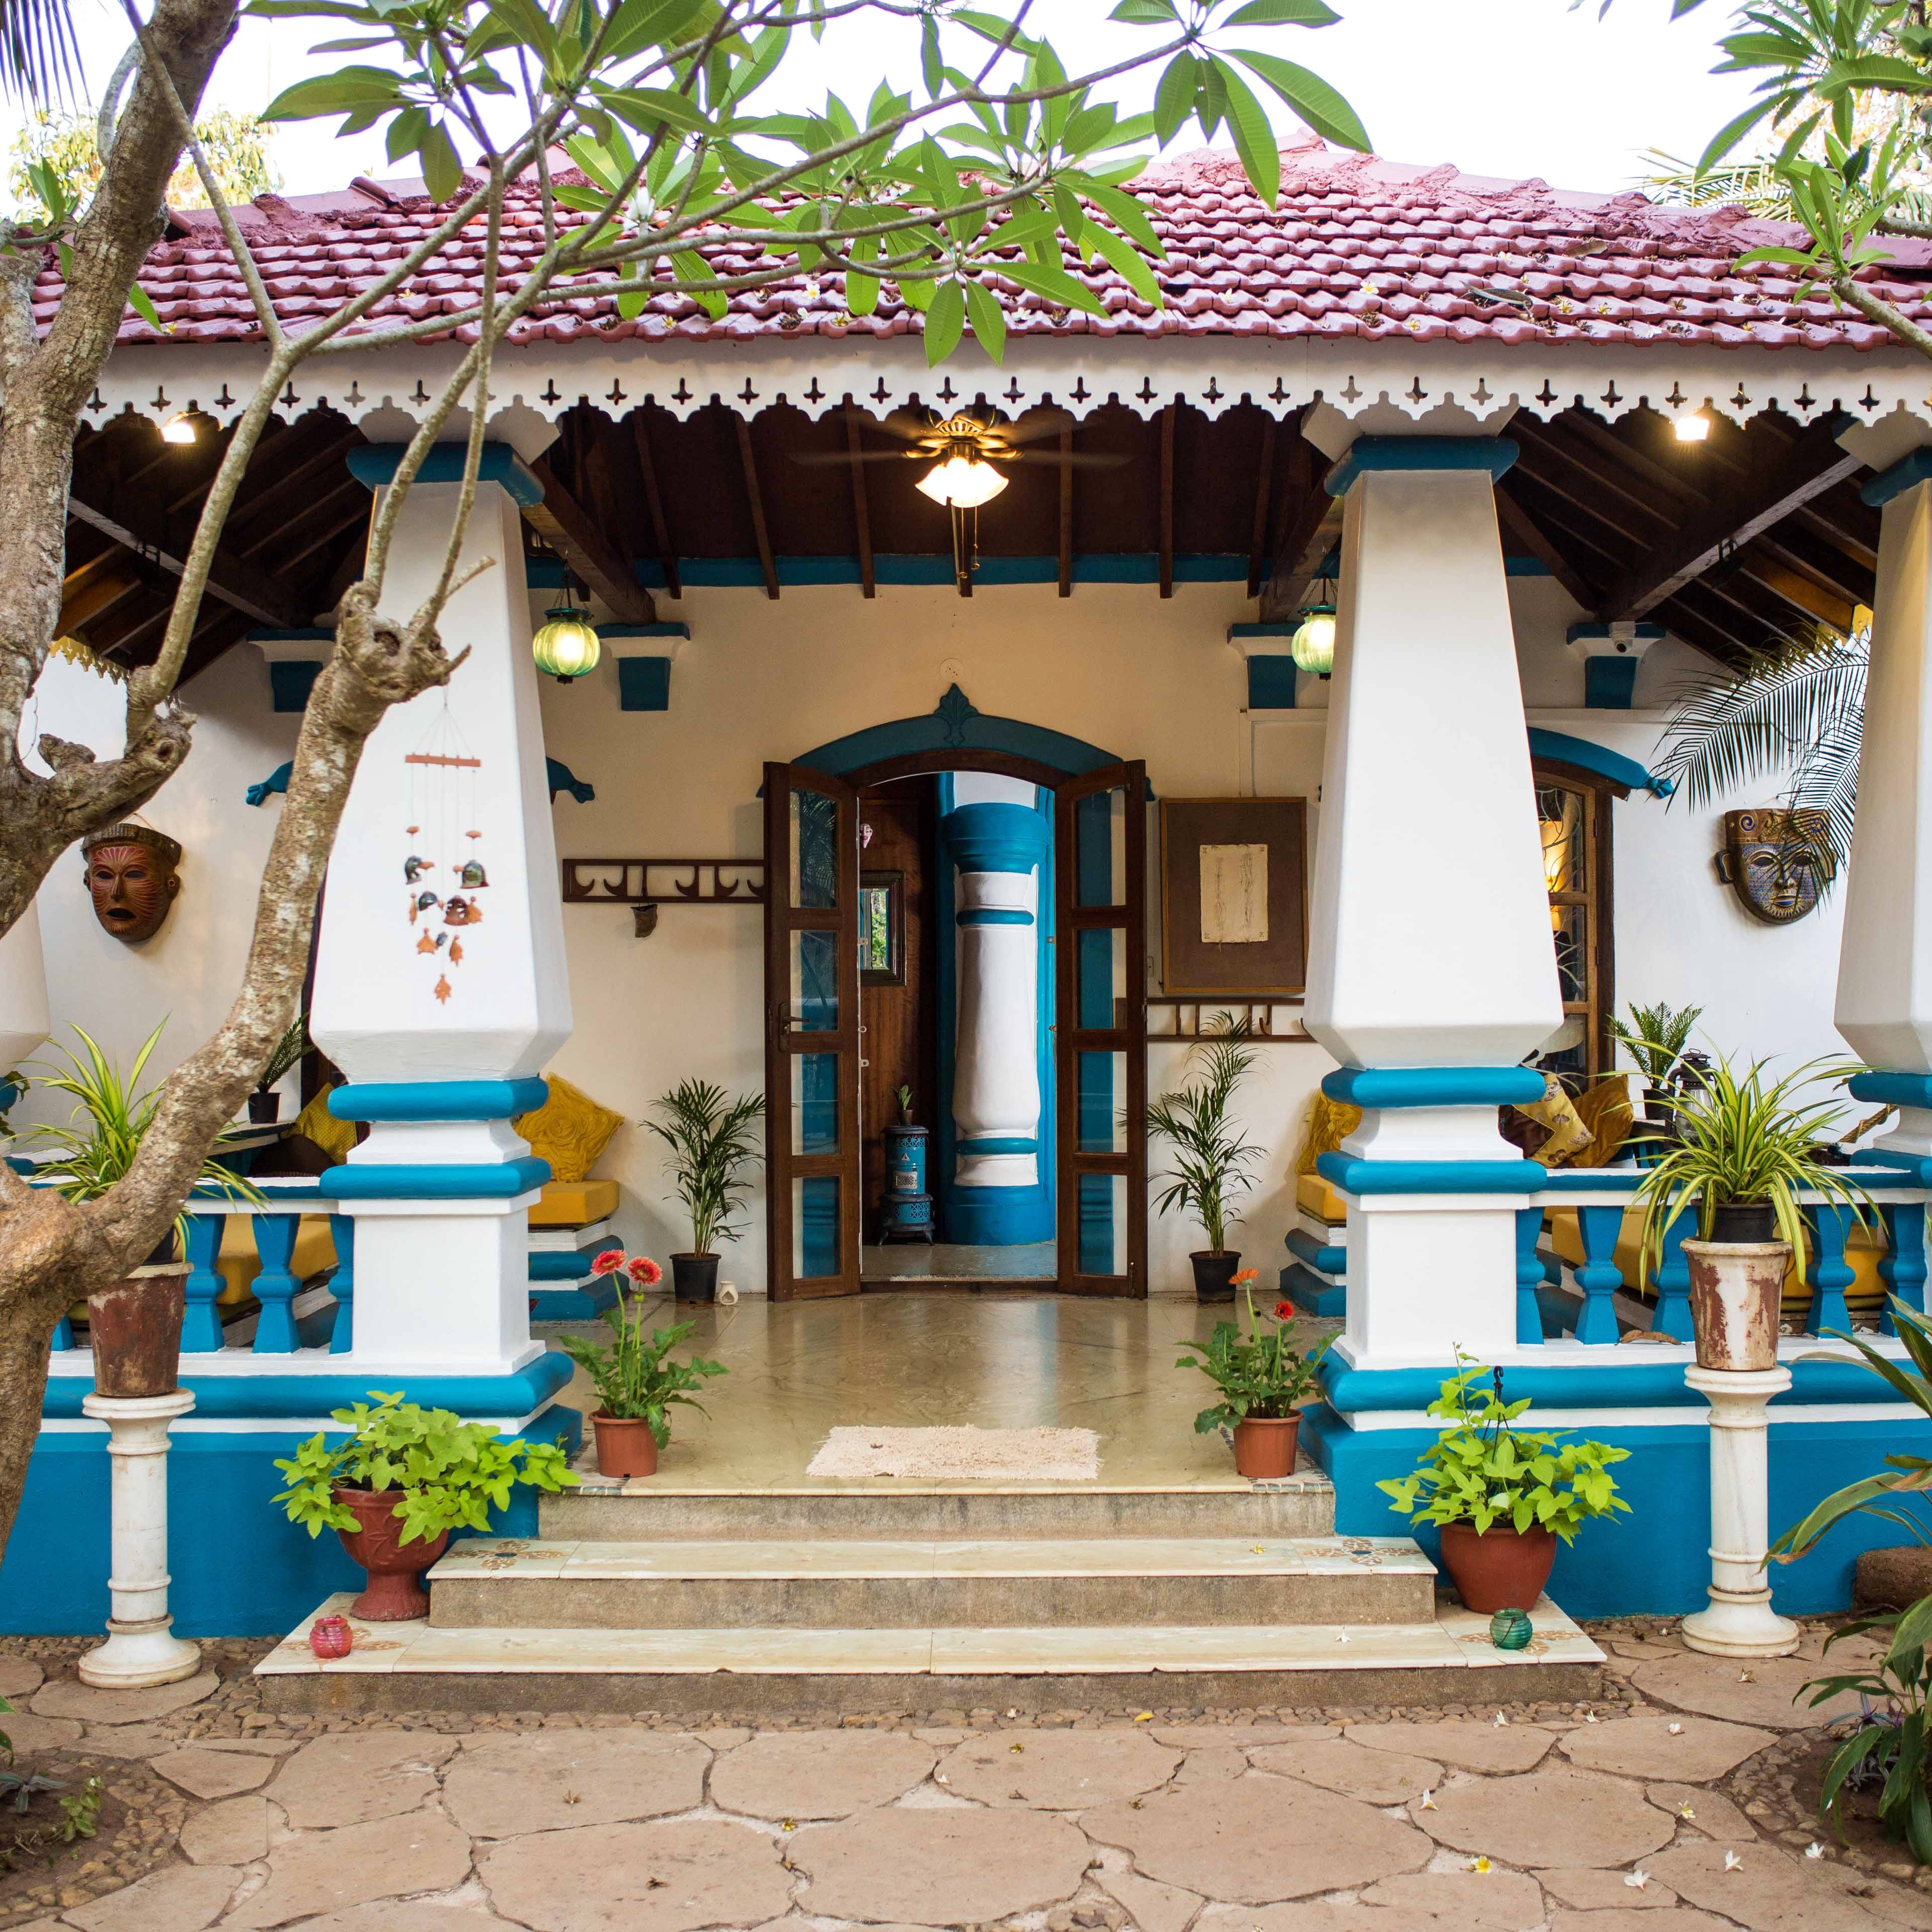 Building,Majorelle blue,House,Architecture,Facade,Leisure,Courtyard,Temple,Plant,Home